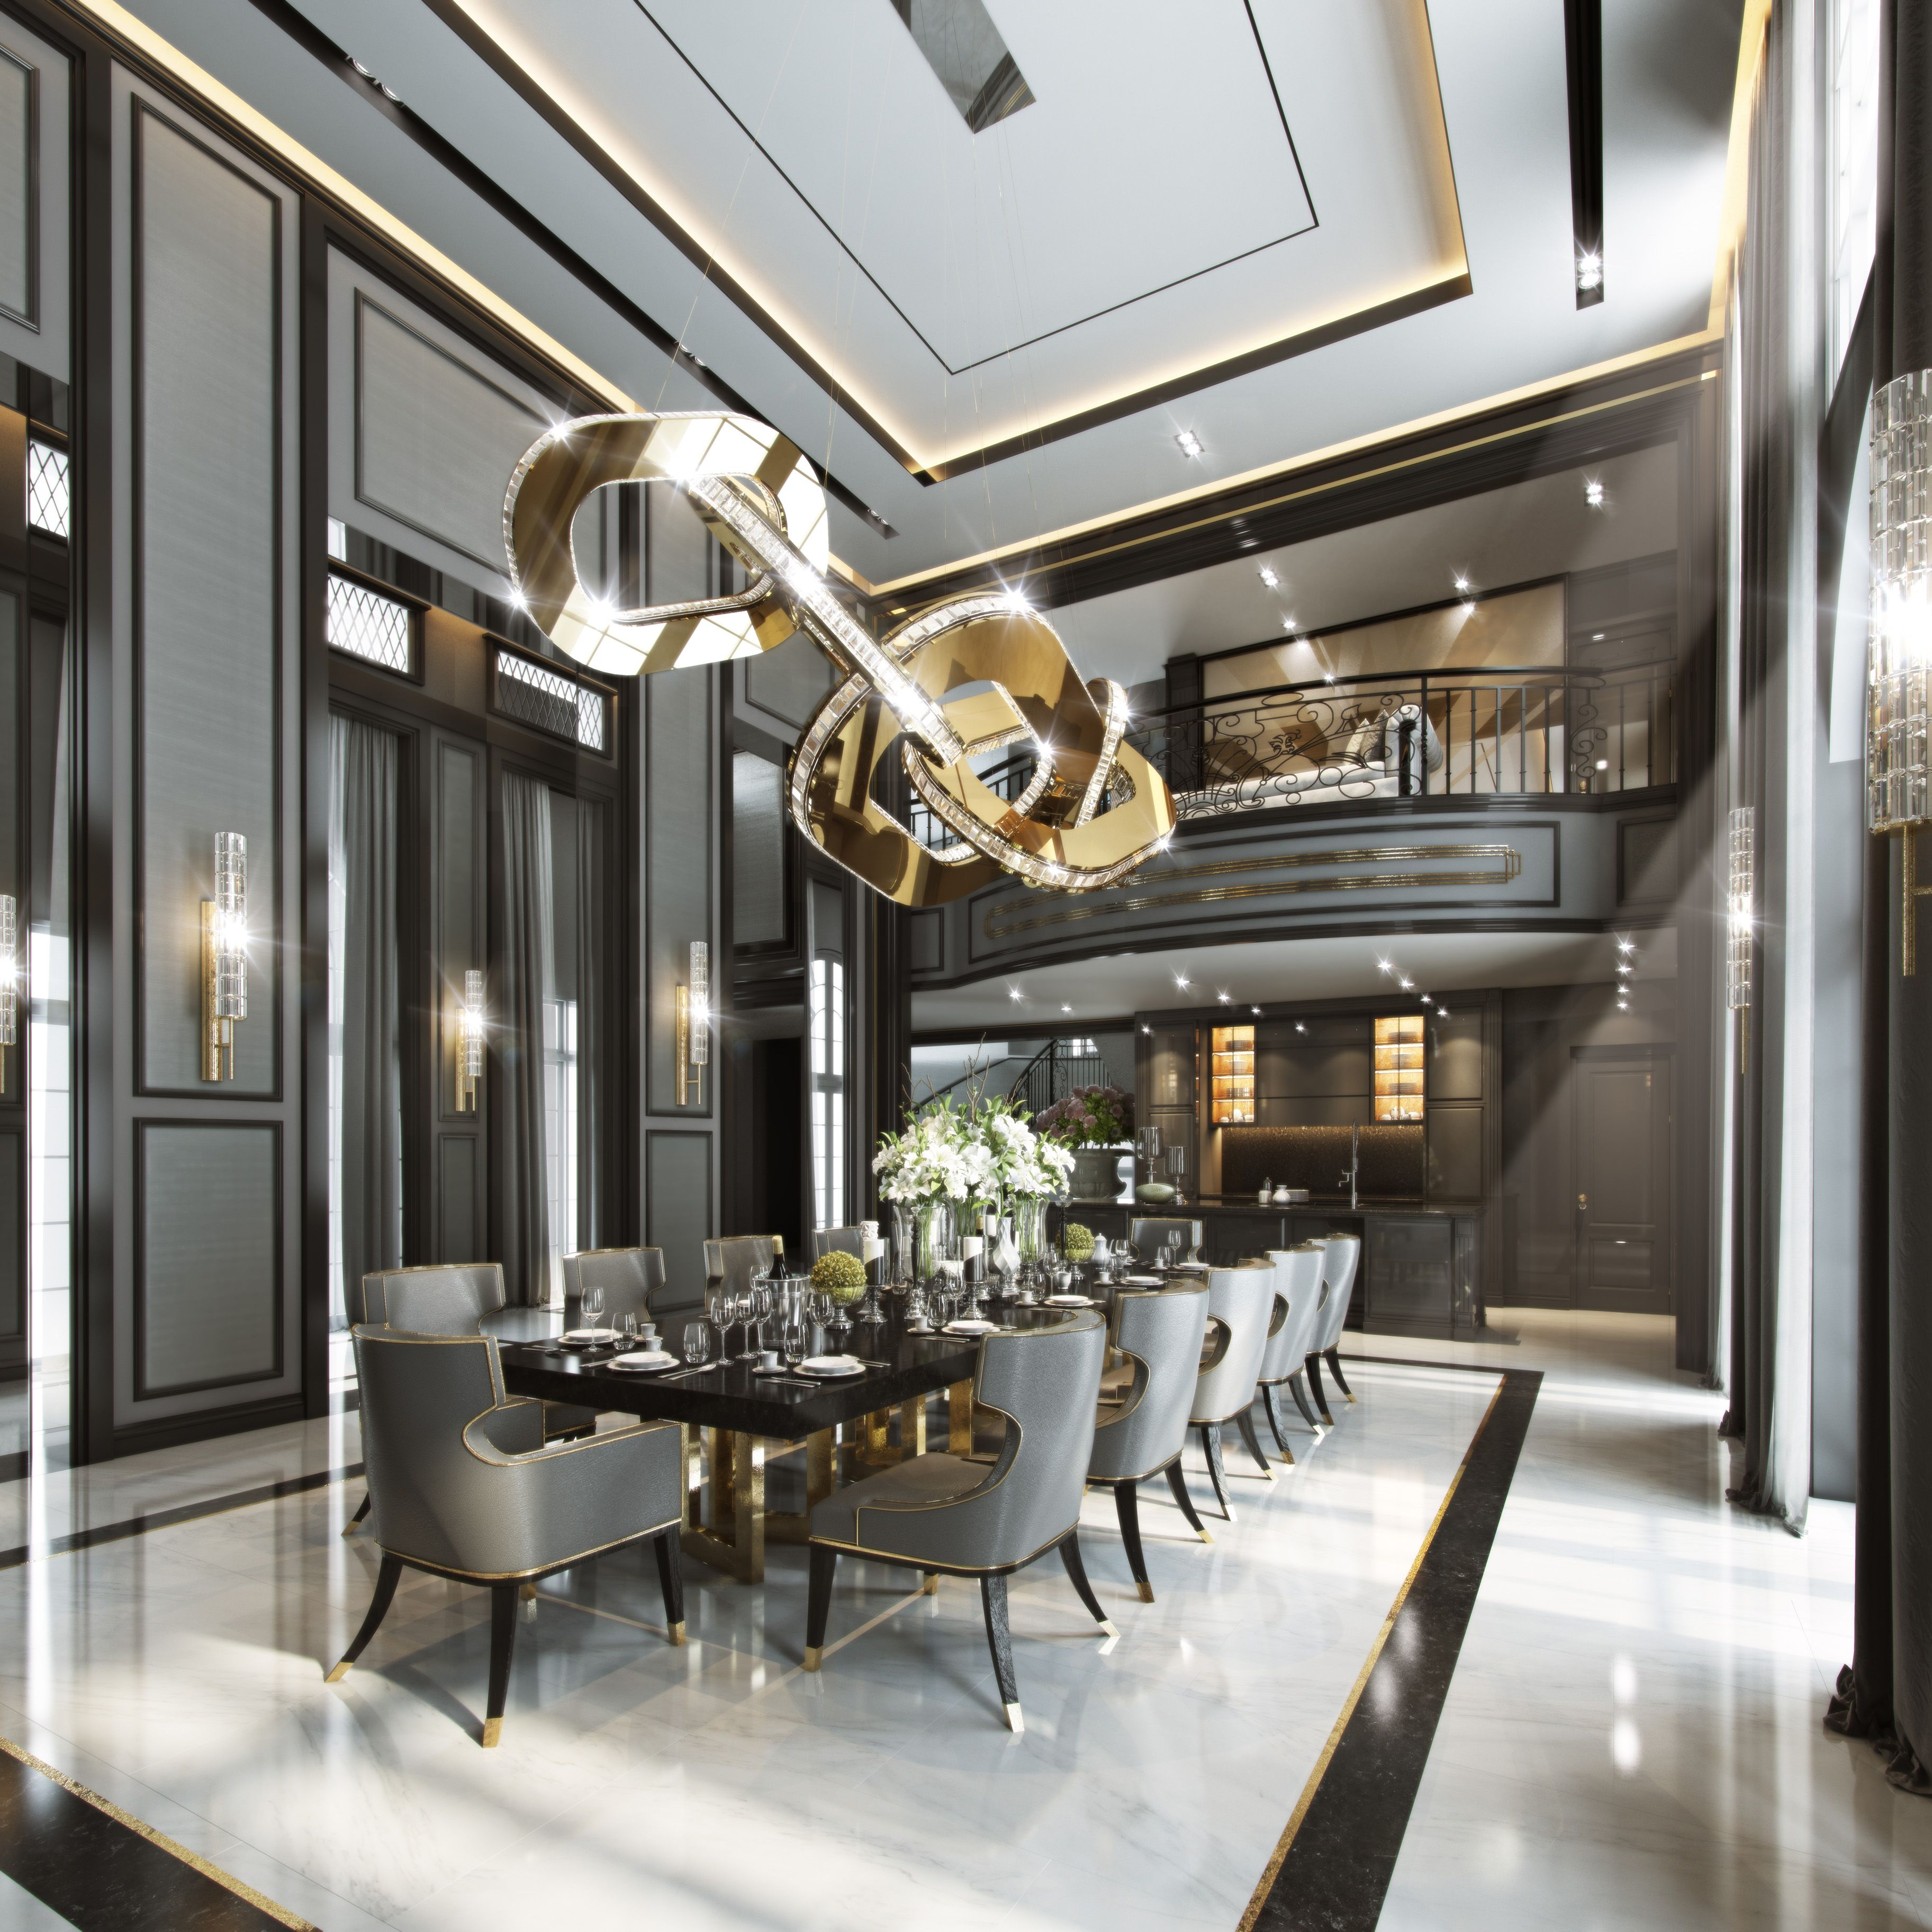 Luxurious Dining Rooms That 39s Ith Interior Residence Thatisith That 39s